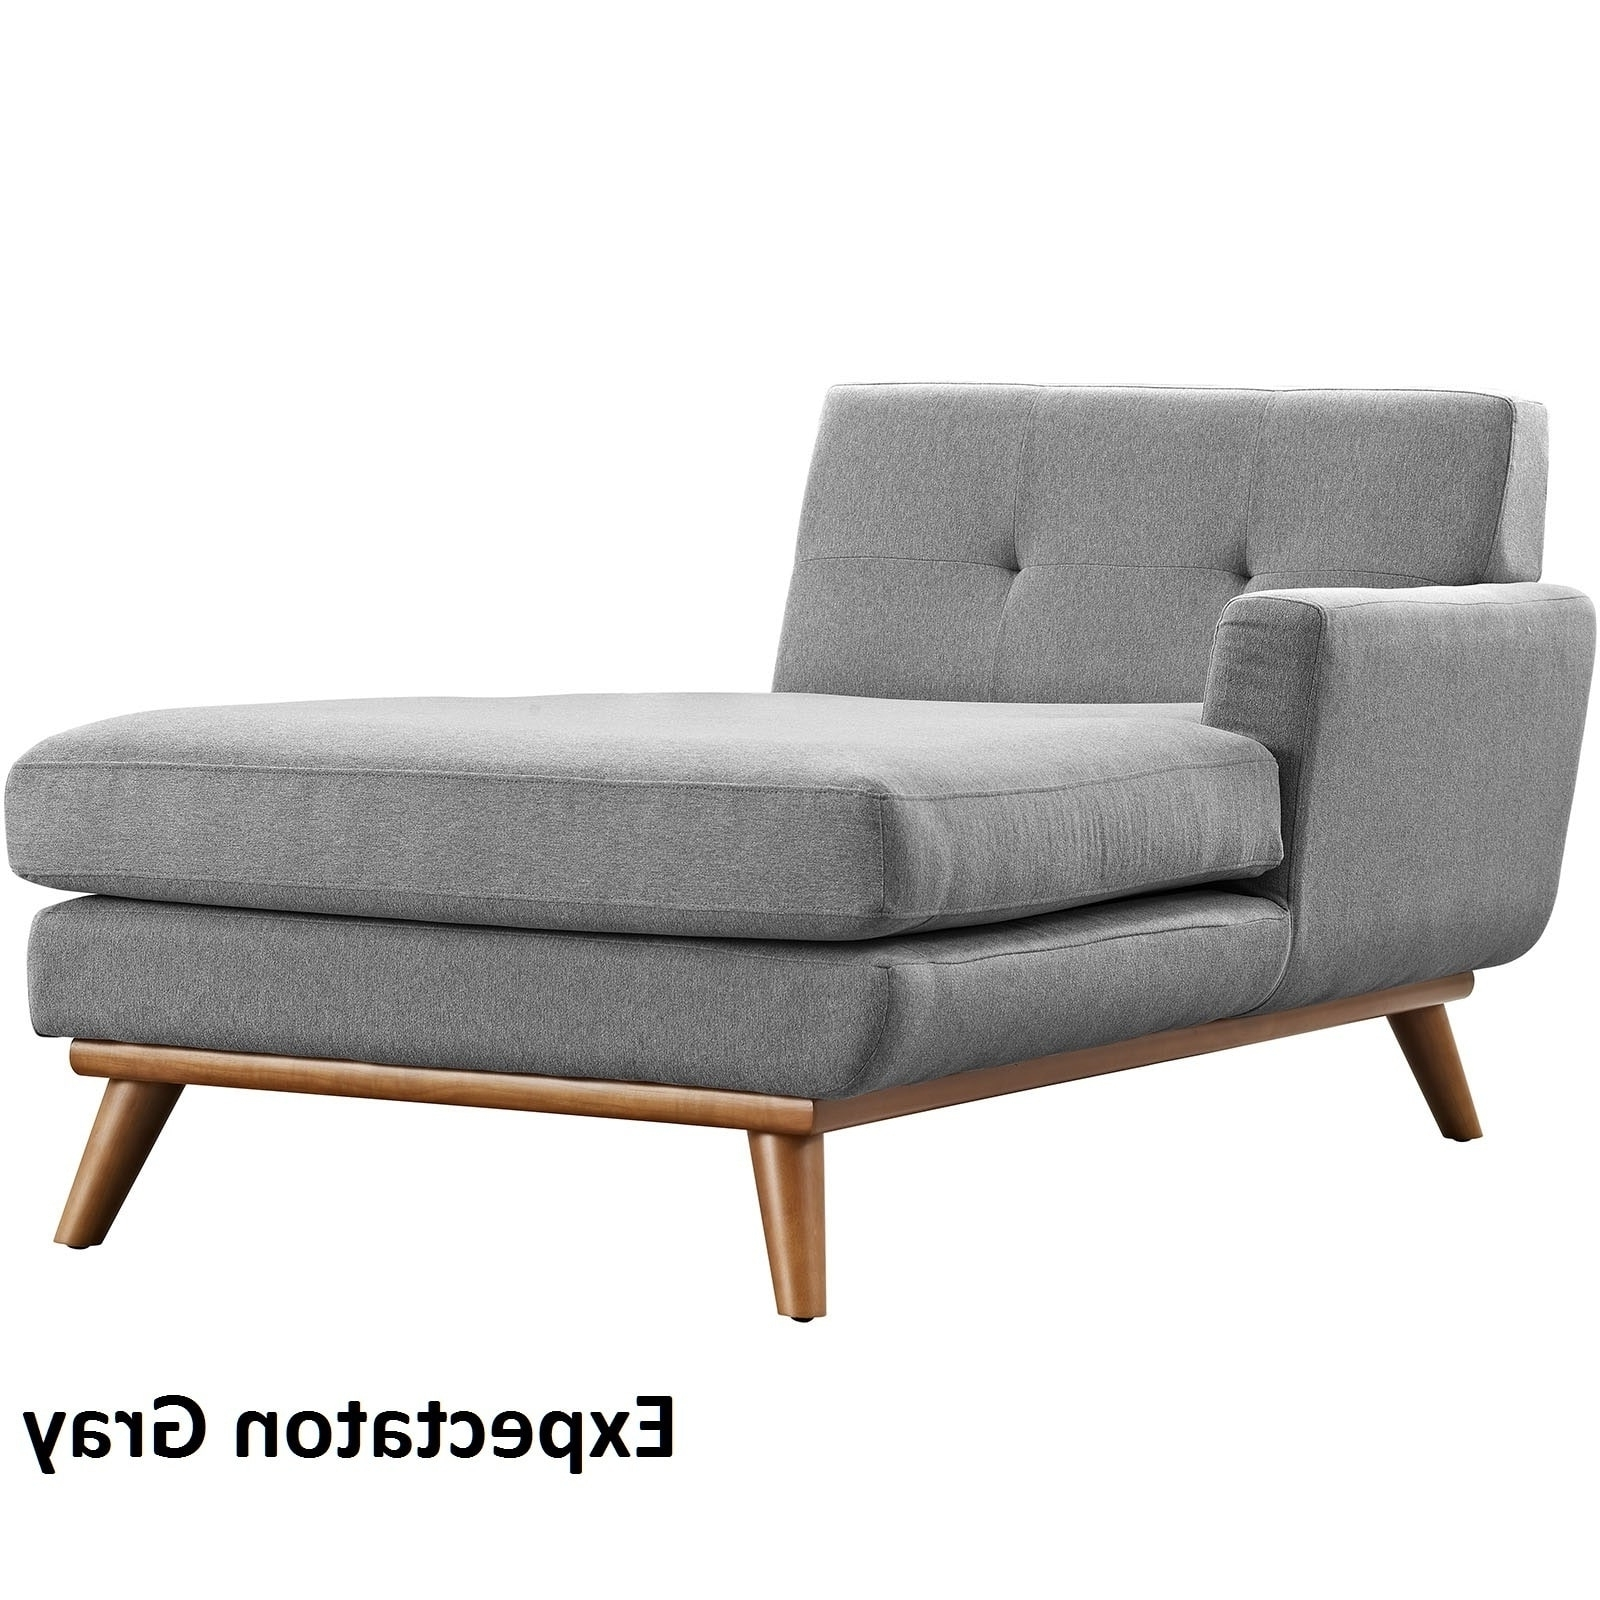 Trendy Mid Century Chaises Intended For Engage Left Arm Mid Century Chaise Lounge – Free Shipping Today (View 12 of 15)